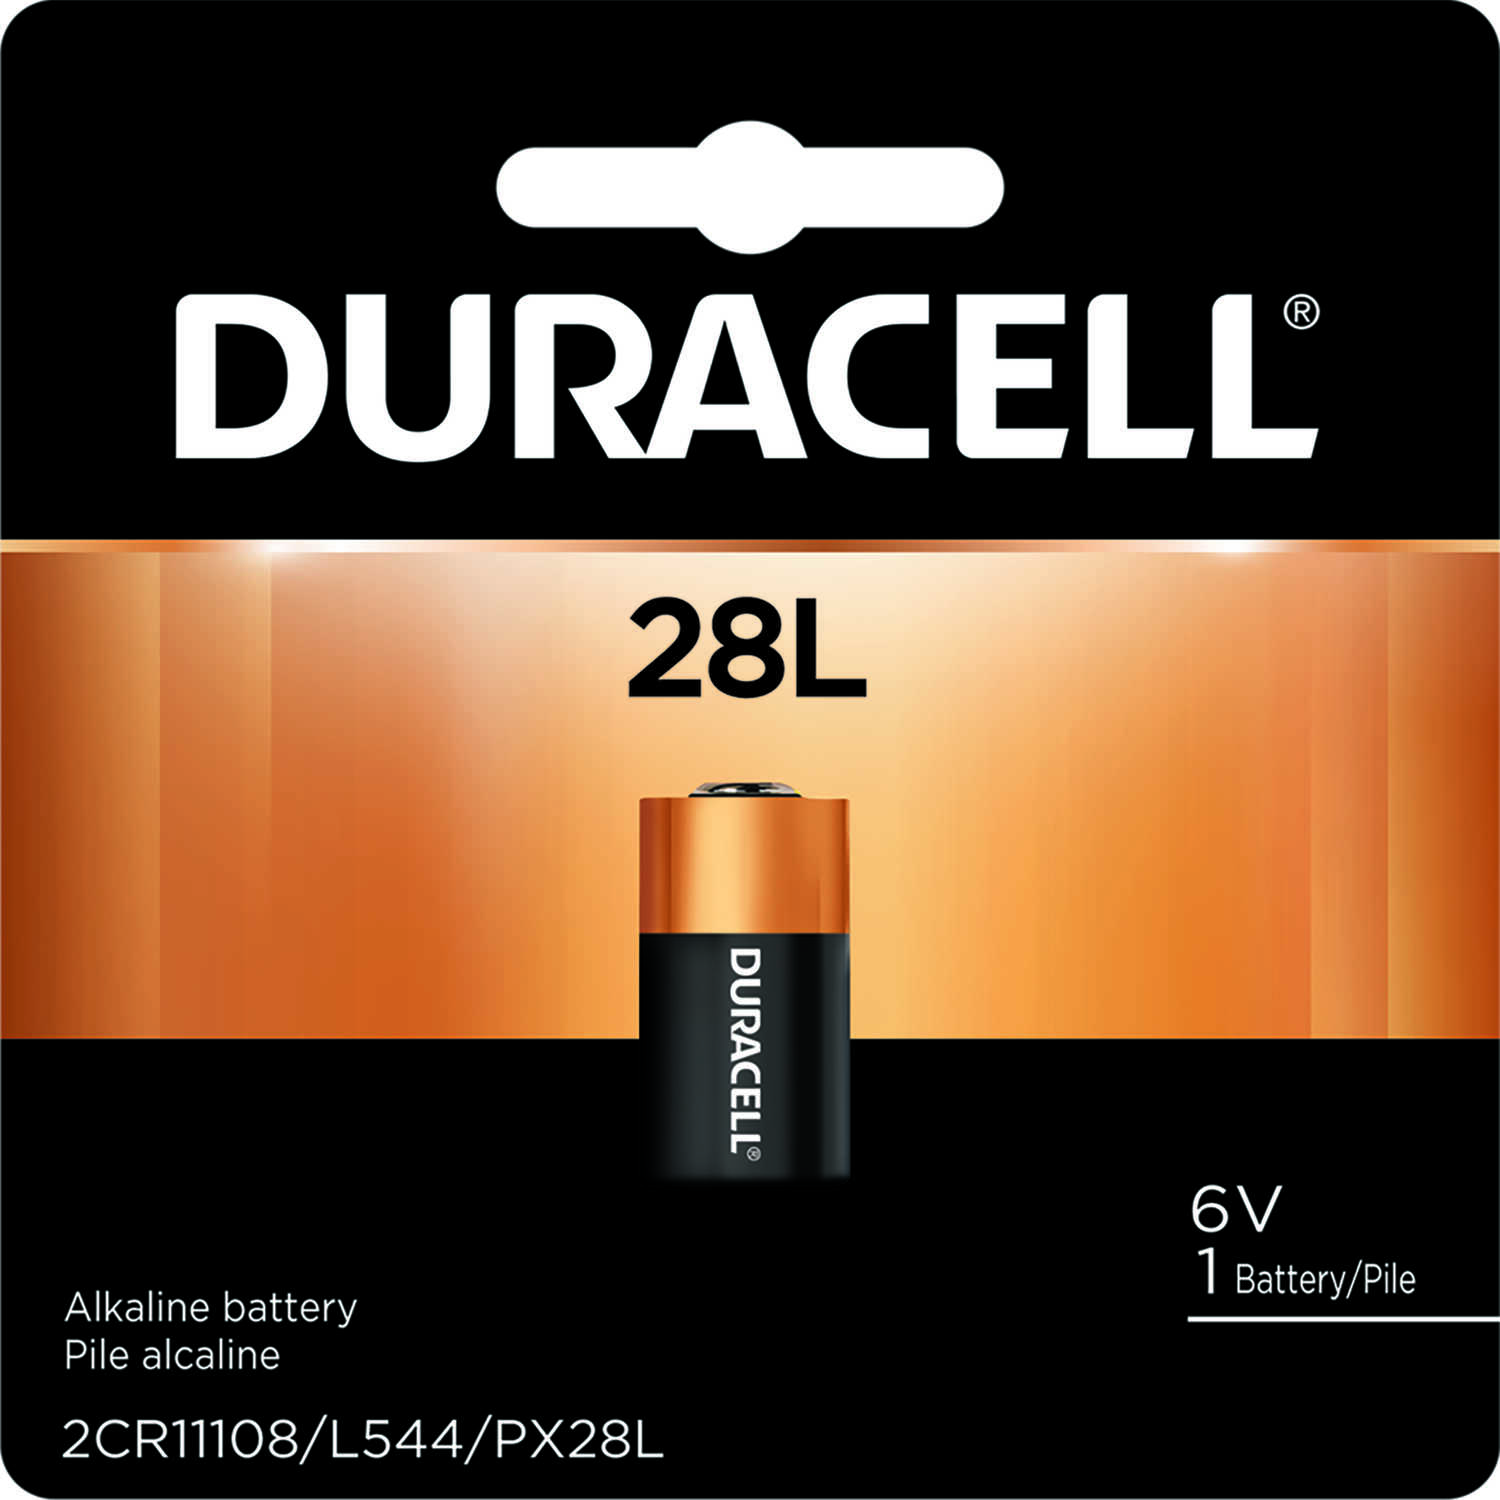 Duracell  Lithium  28L  6 volt Camera Battery  PX28LBPK  1 pk